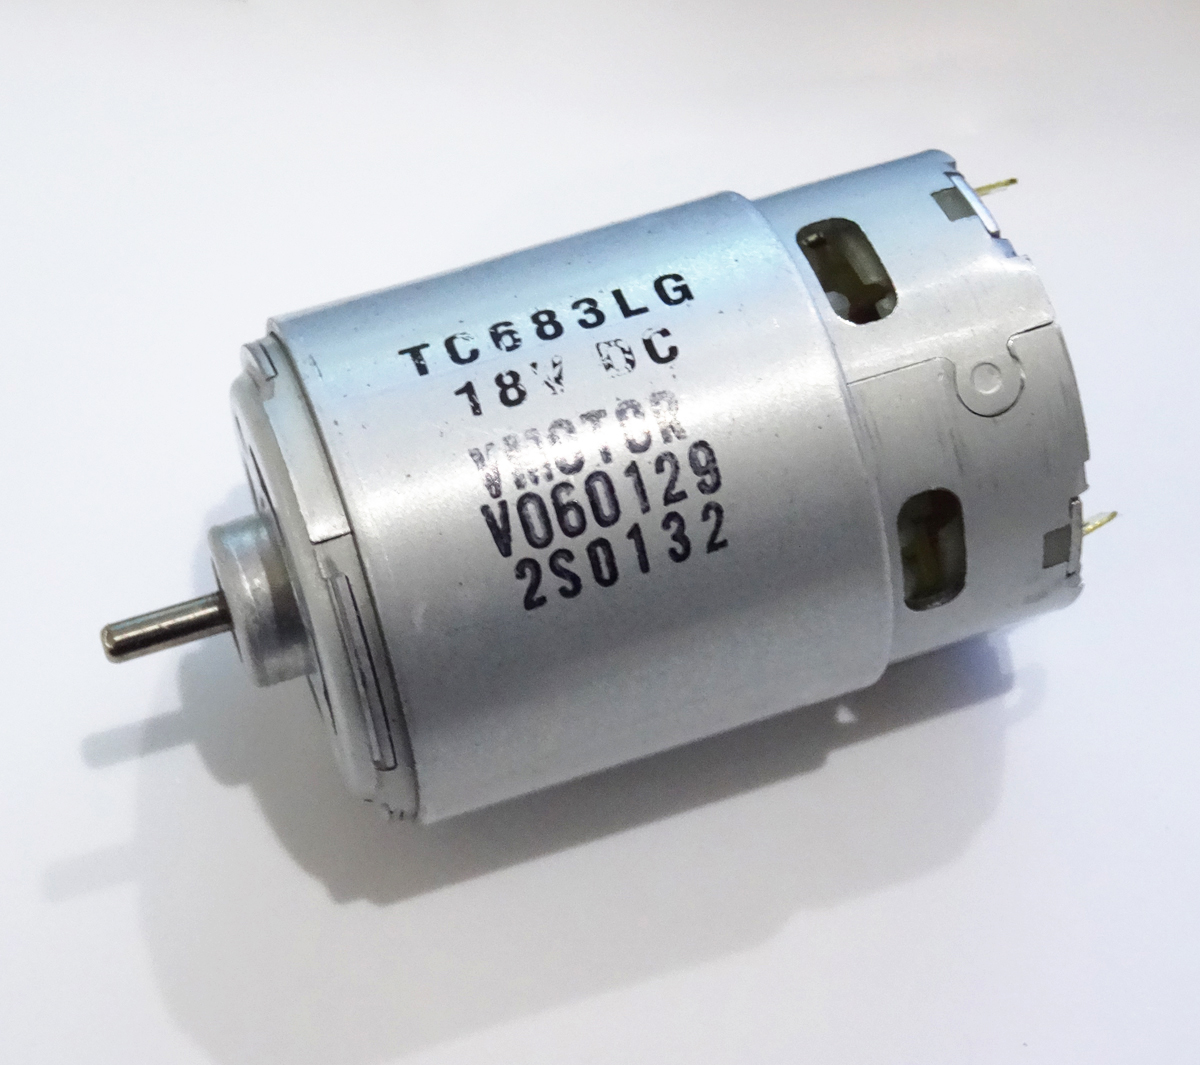 New Johnson <font><b>Motor</b></font> <font><b>550</b></font> <font><b>motor</b></font> <font><b>12v</b></font> 18V 19000RPM High speed <font><b>motor</b></font> for Bosch Weir Makita Wicks image